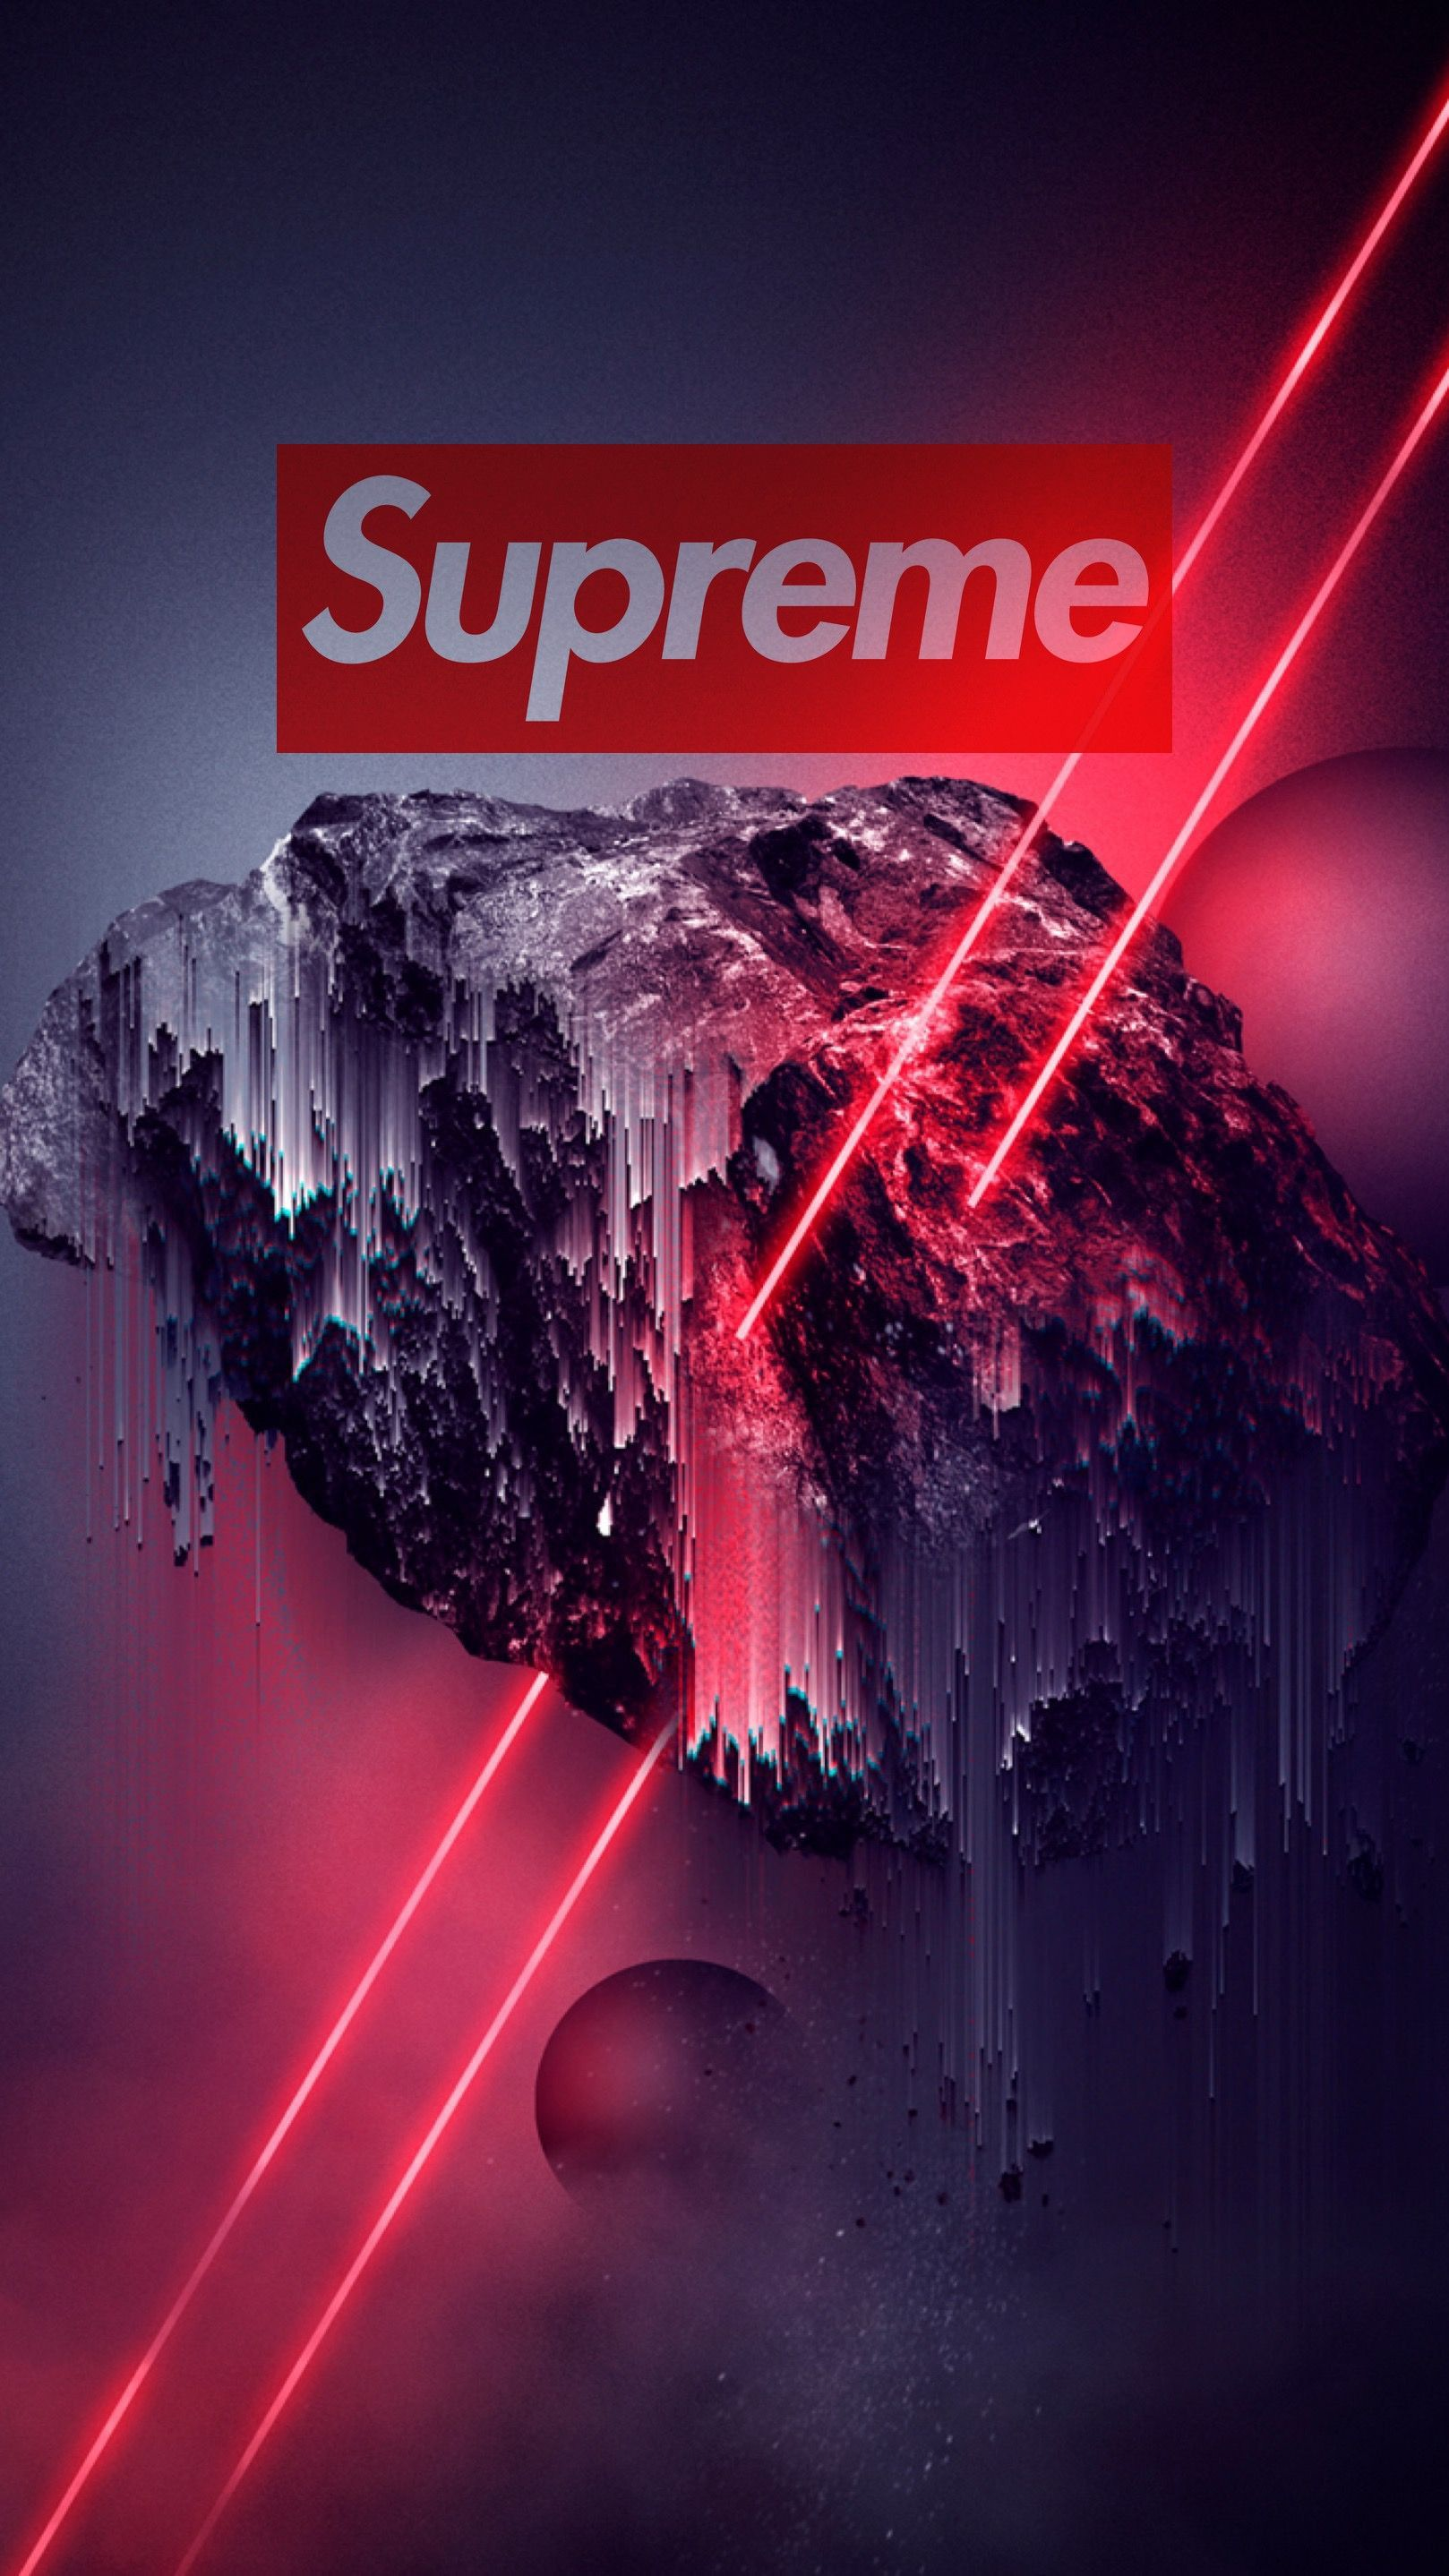 New Supreme Wallpaper iPhone (With images) Tapety